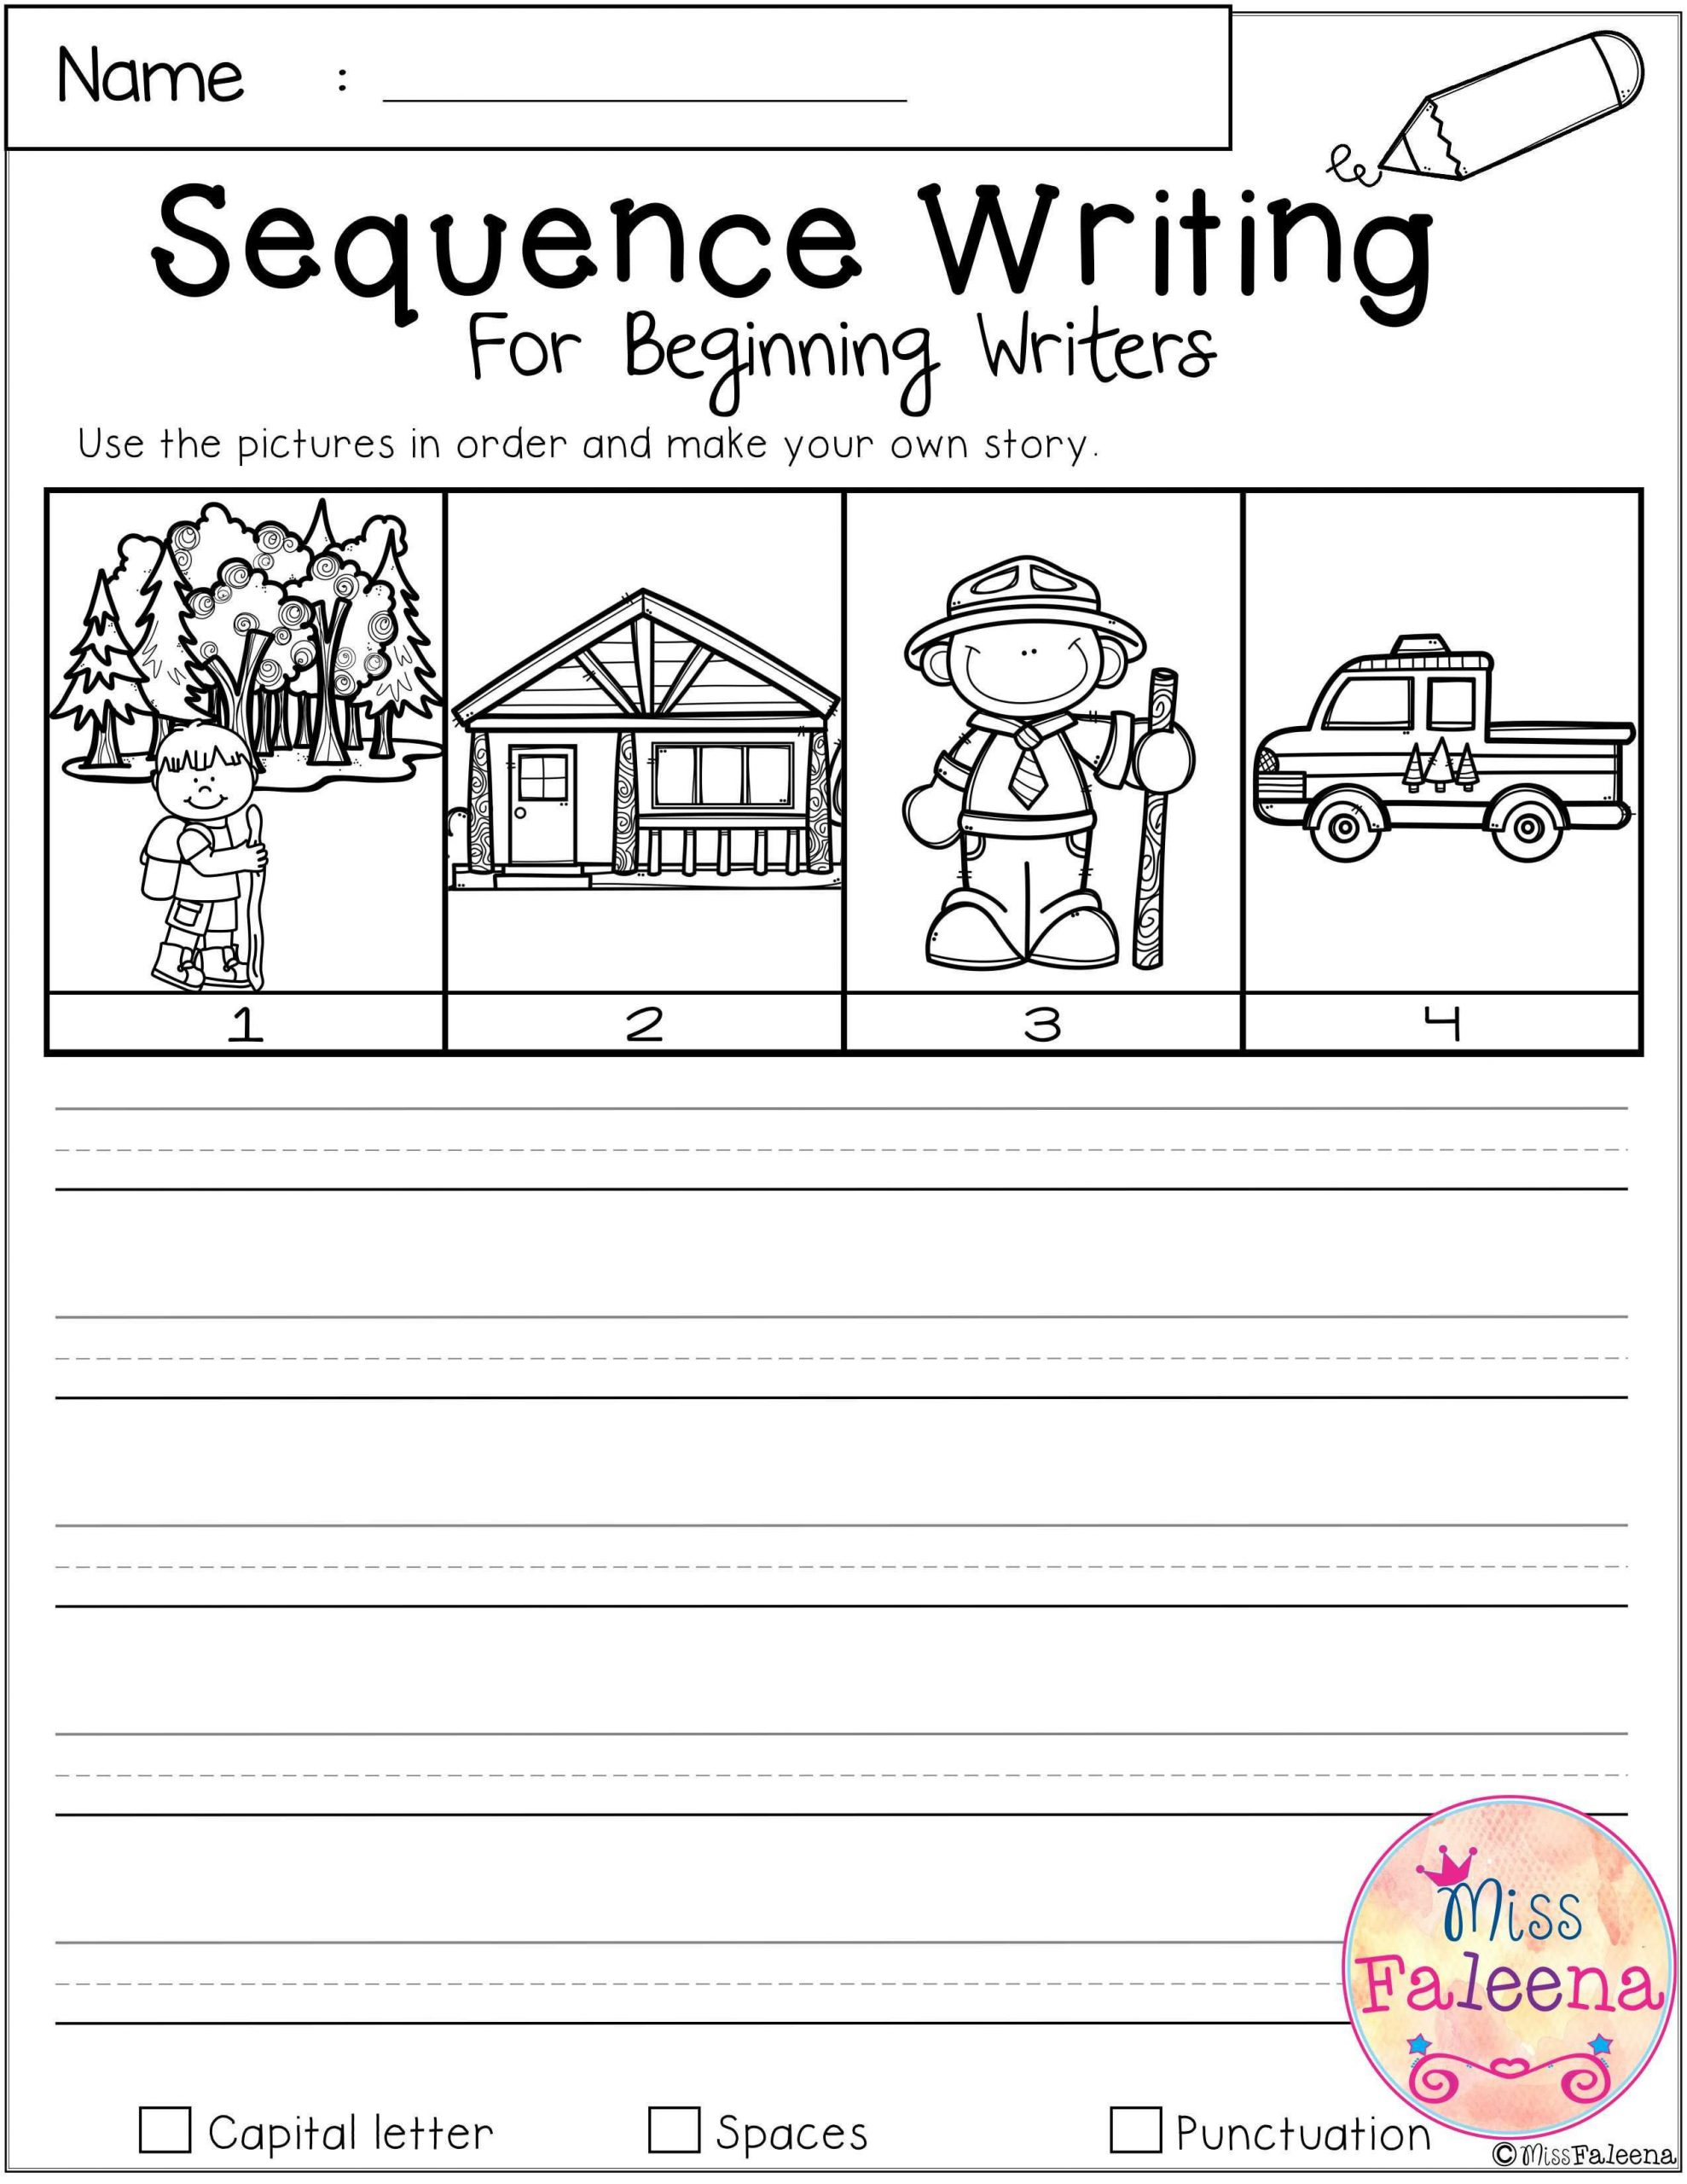 Sequencing Worksheet First Grade September Sequence Writing for Beginning Writers